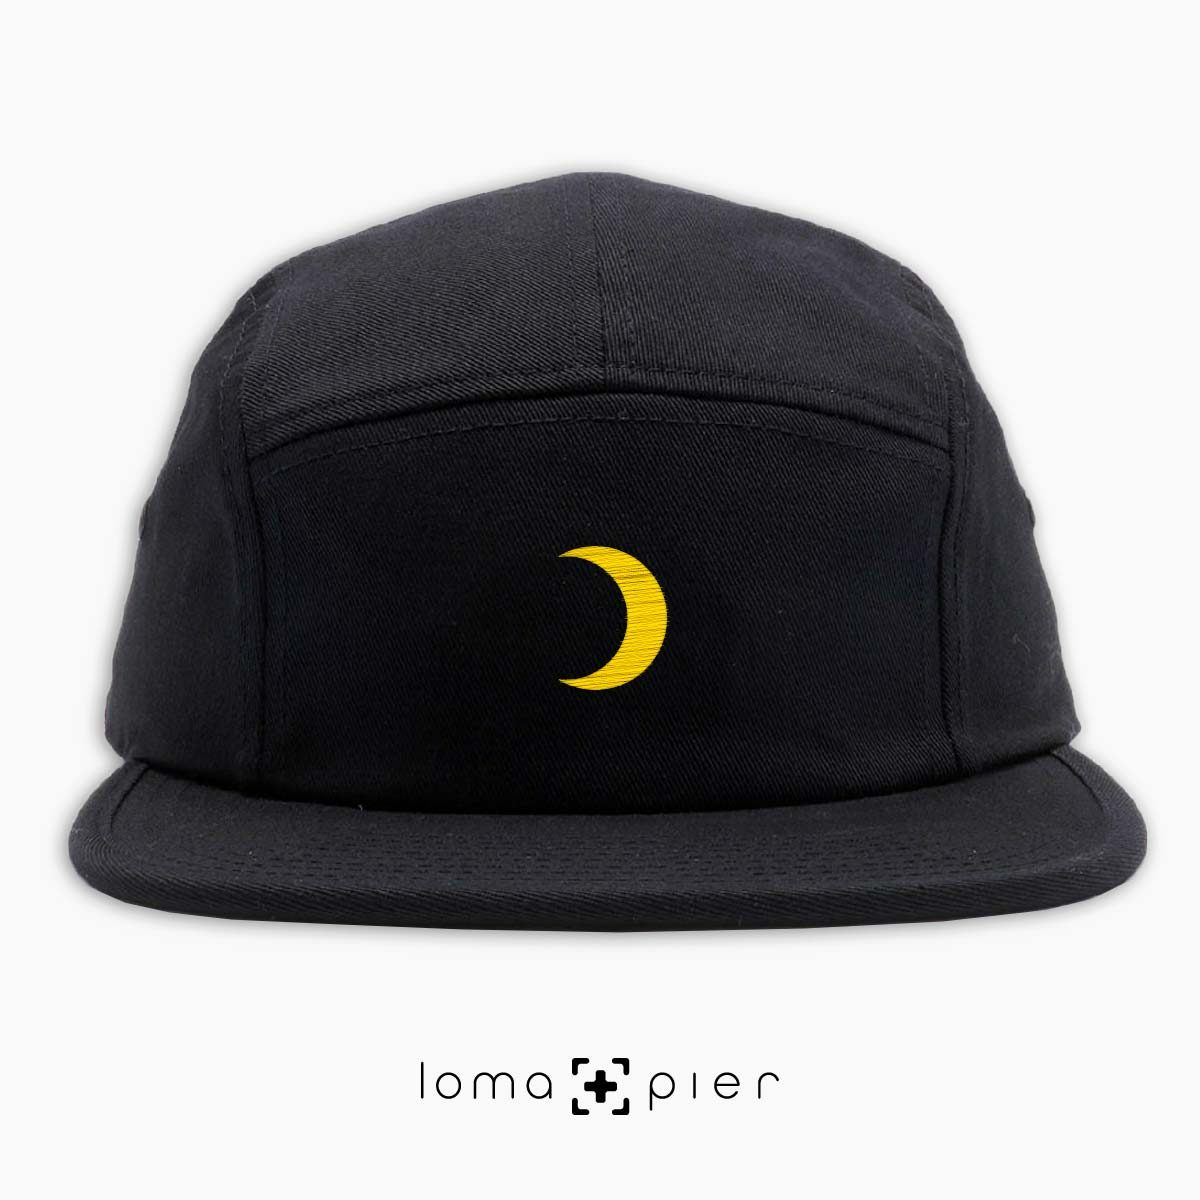 MOON icon embroidered on a black cotton 5-panel hat by loma+pier hat store